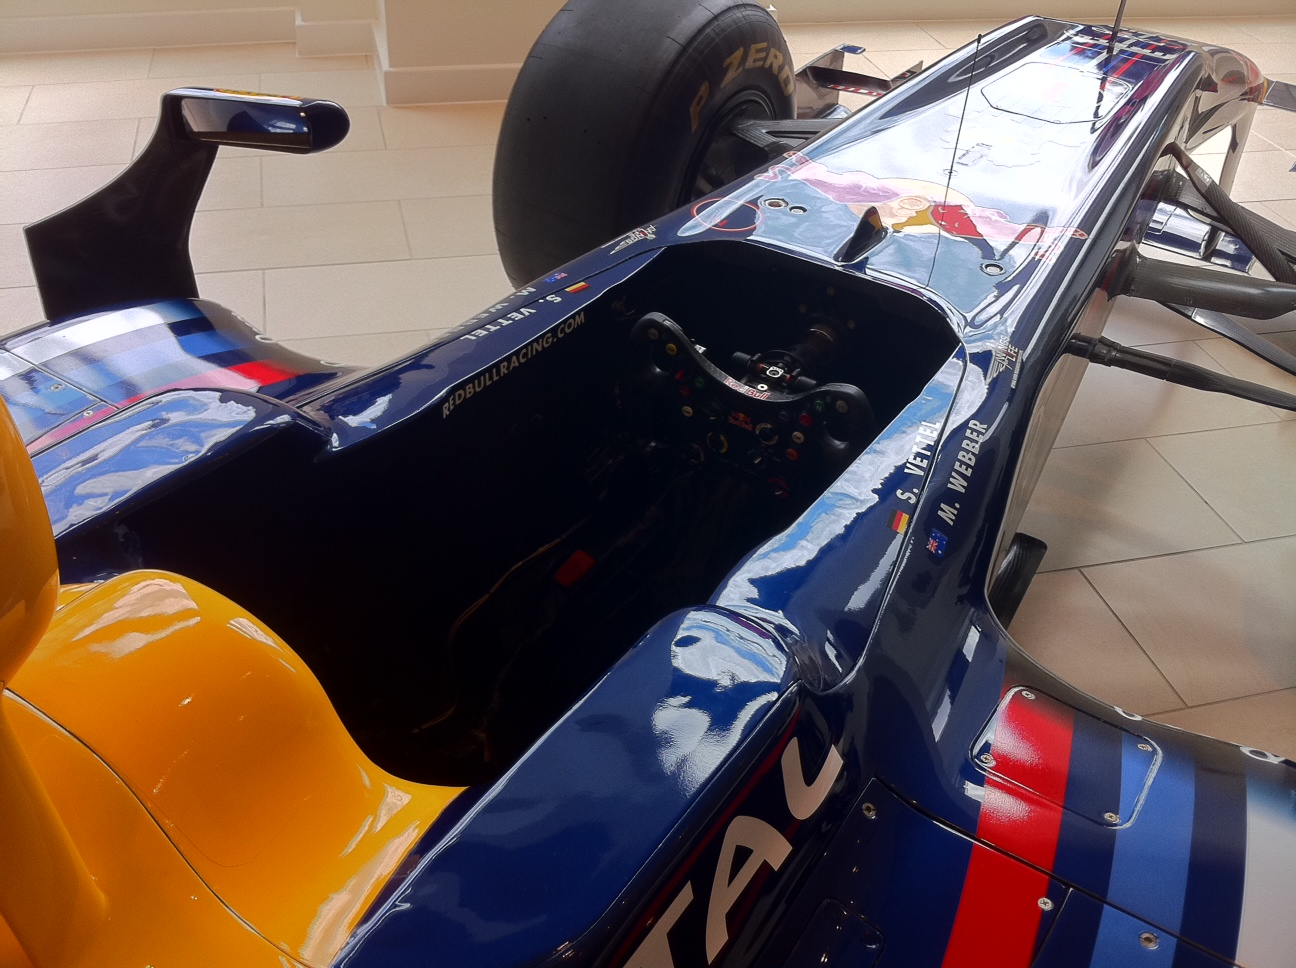 vettel-2010-f1-car-rb6-in-mayfair-london-os-cockpit